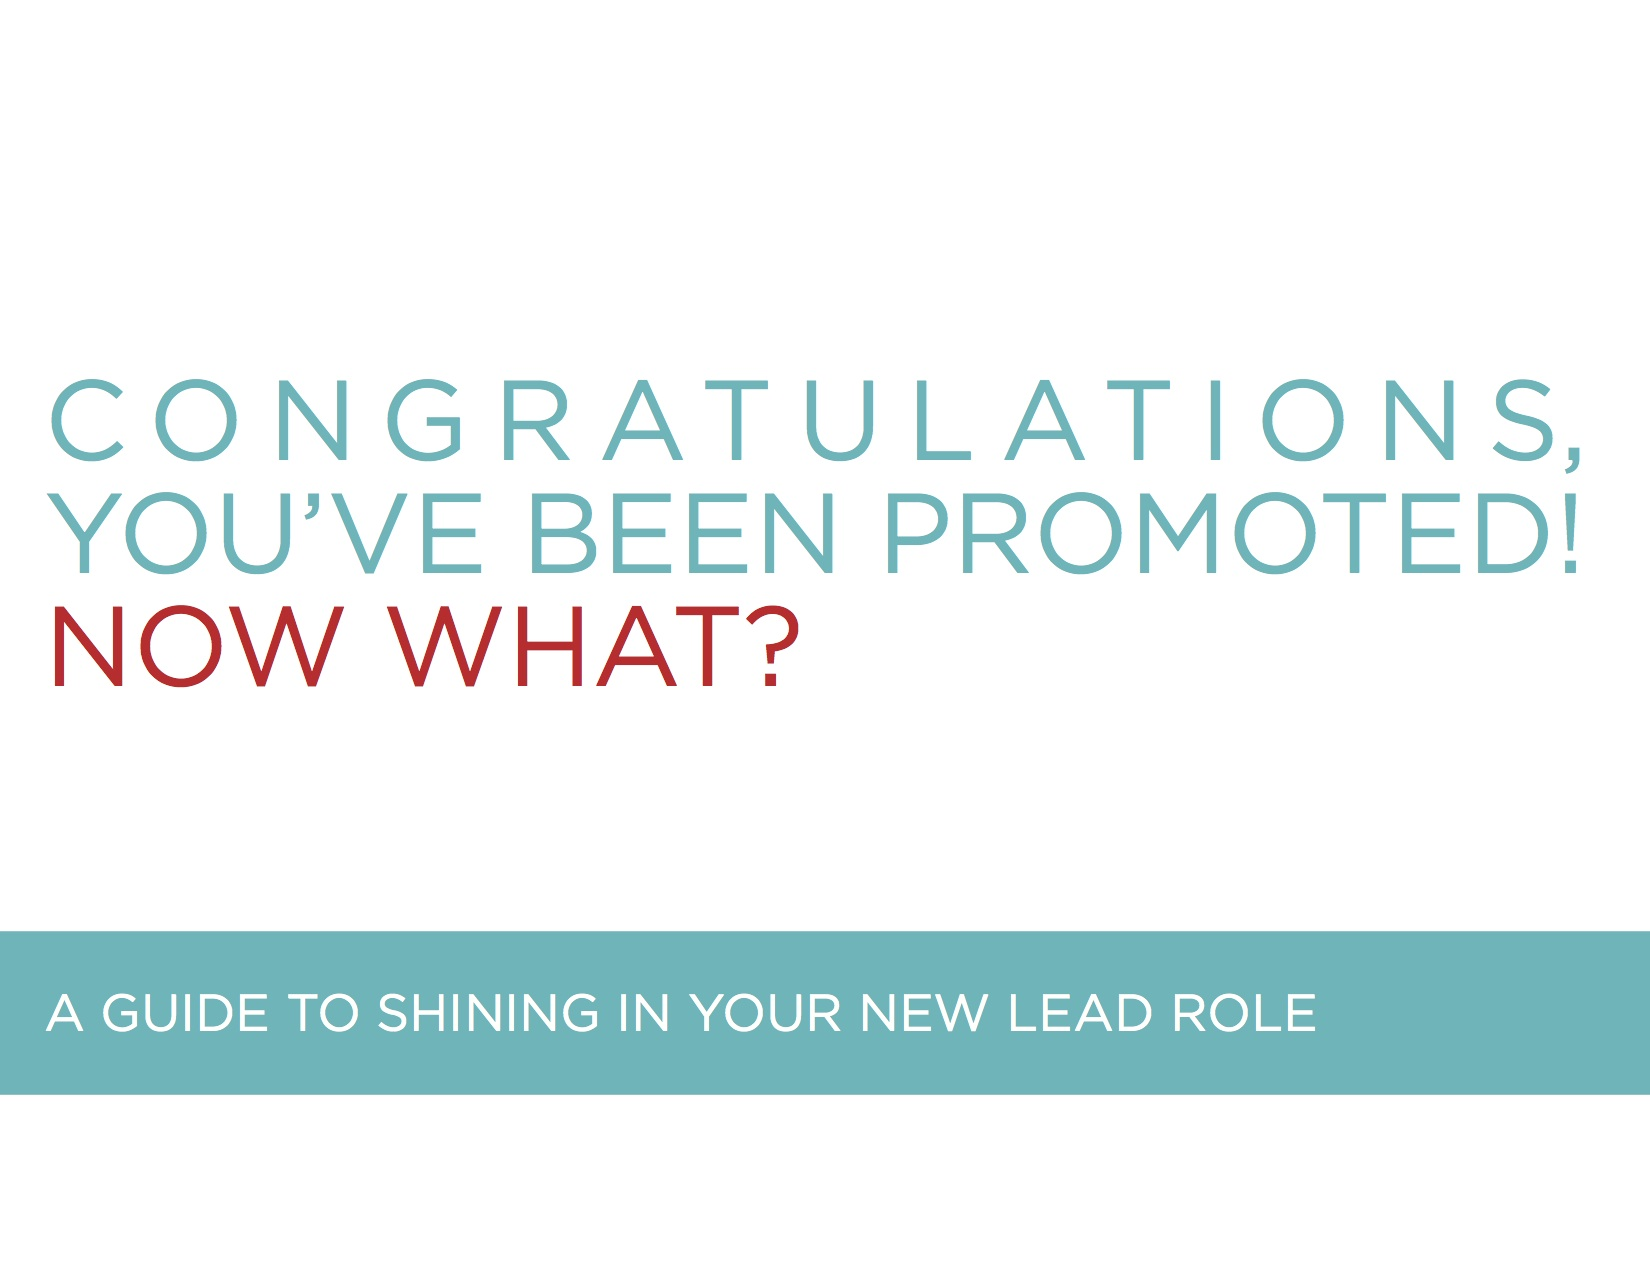 Congratulations, you've been promoted! Now what?